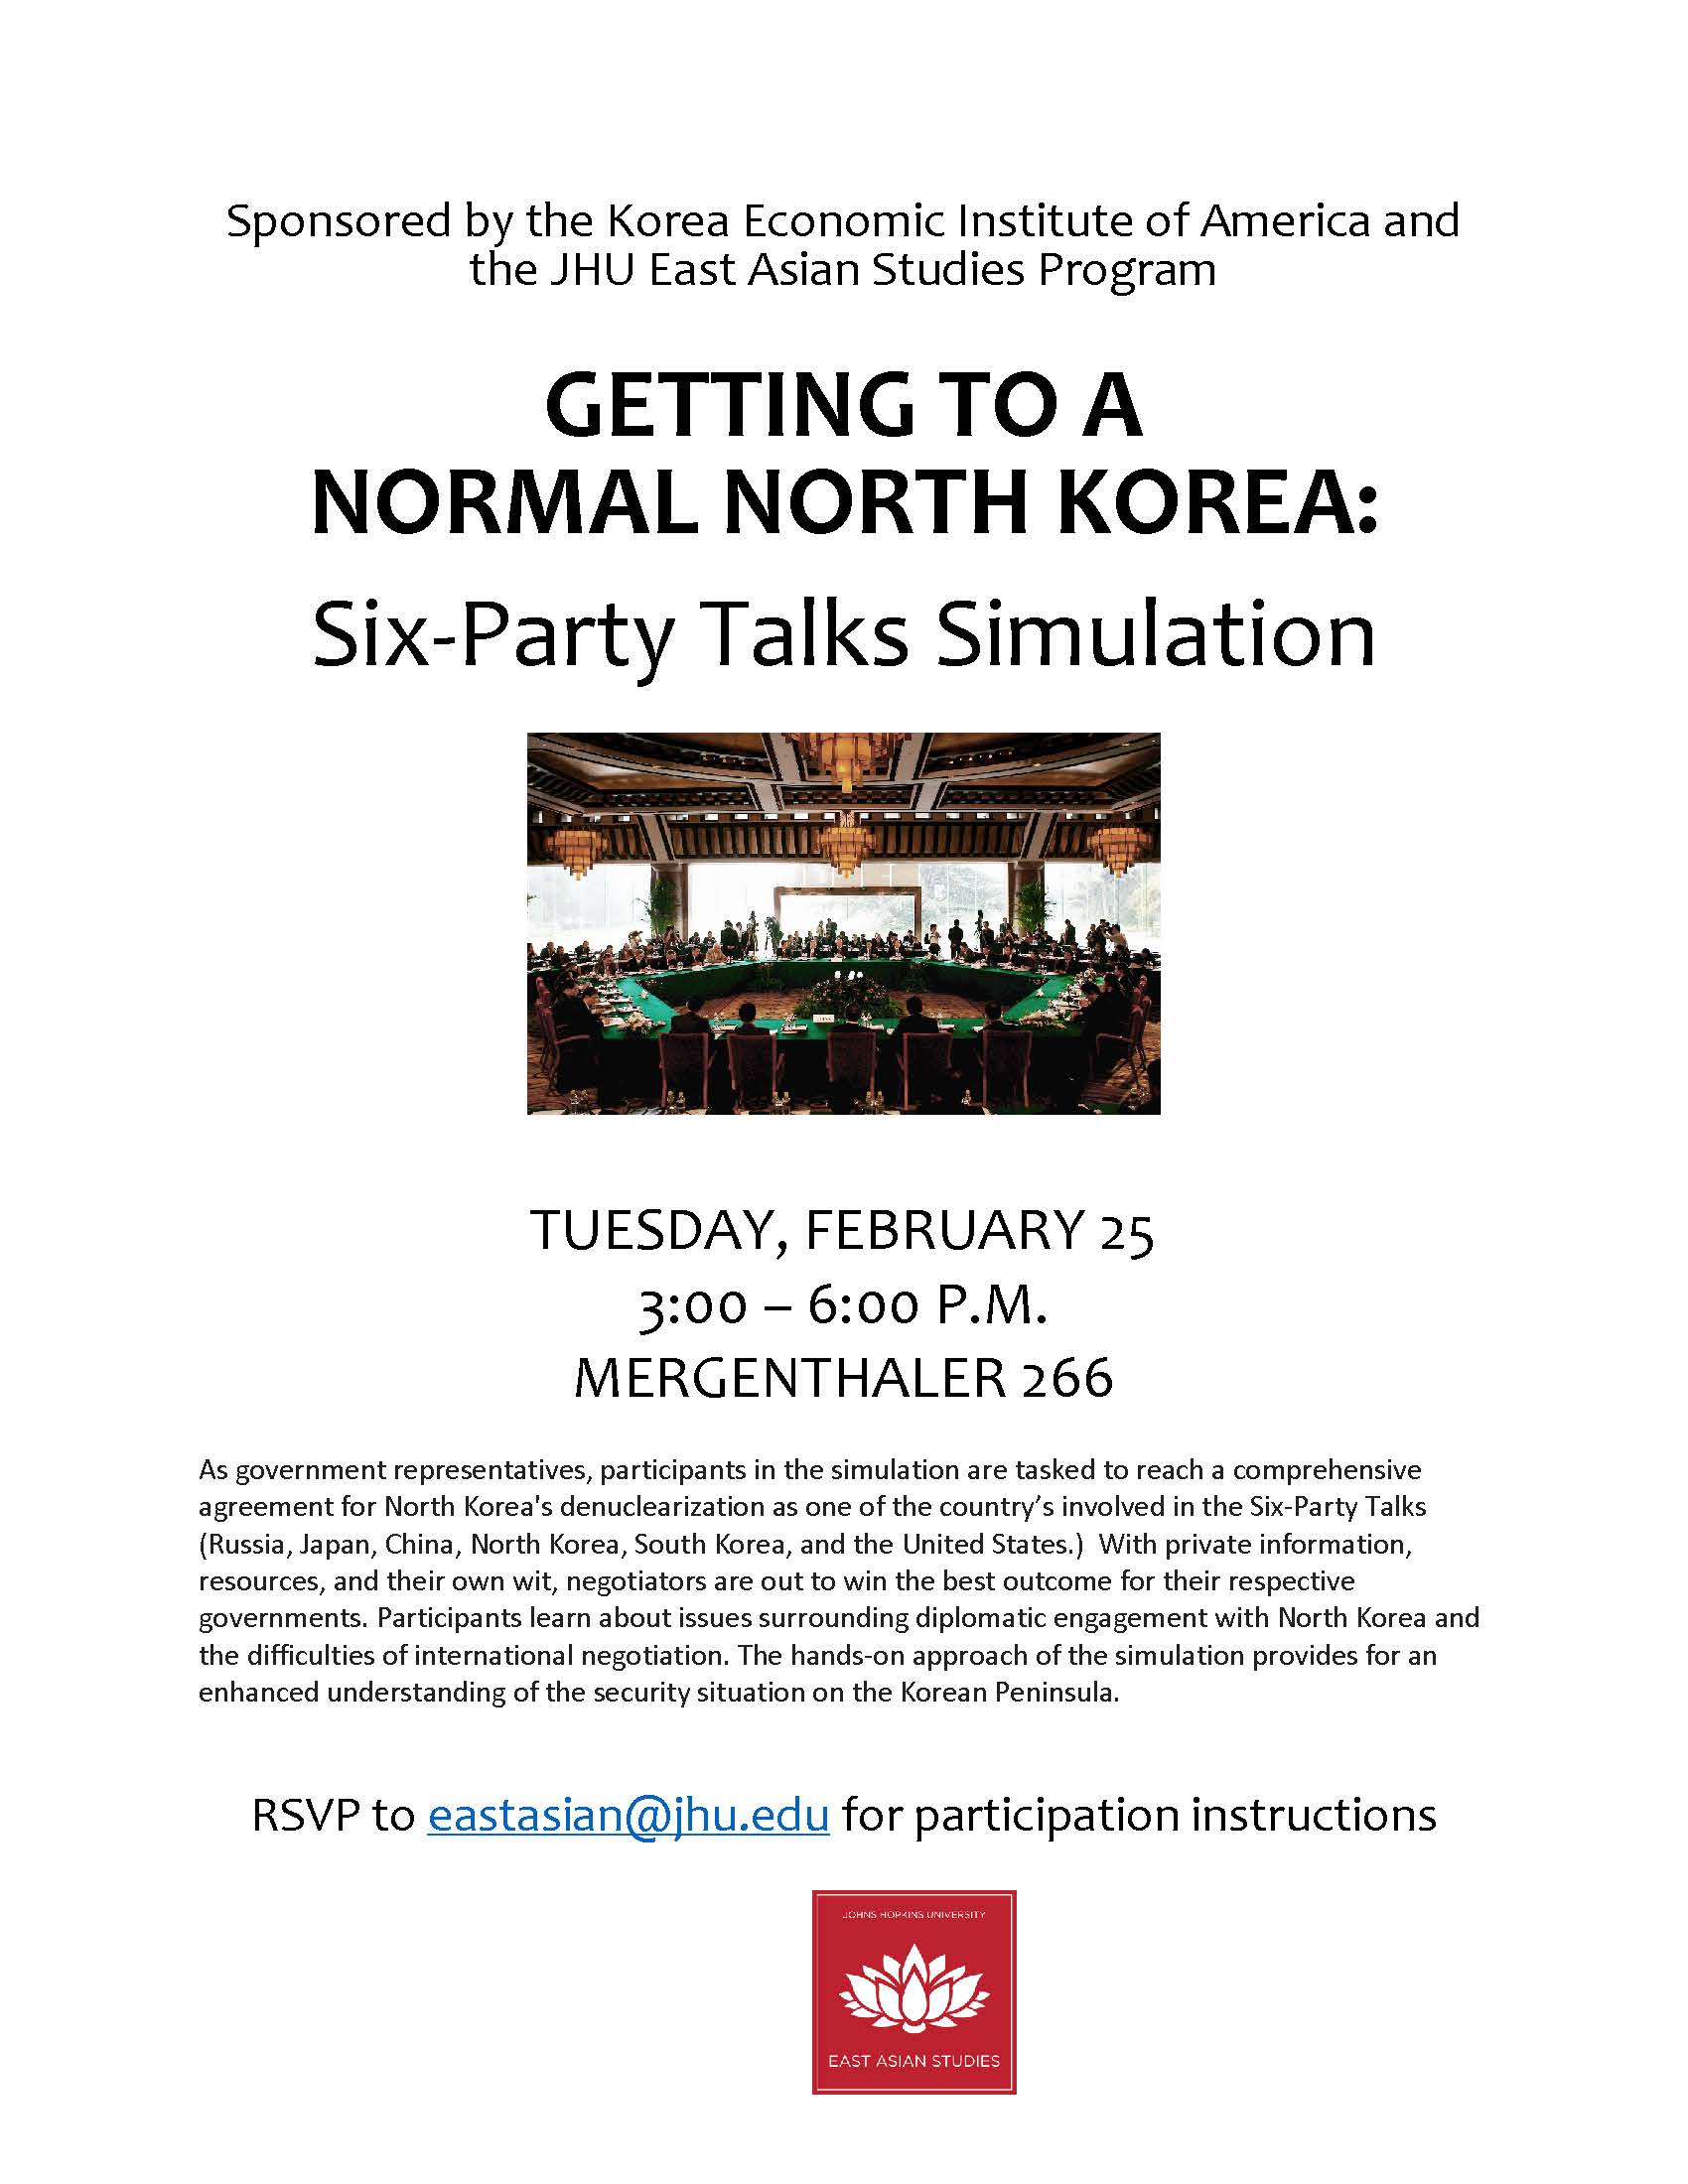 Getting to a Normal North Korea: Six-Party Talks Simulation, Feb. 25